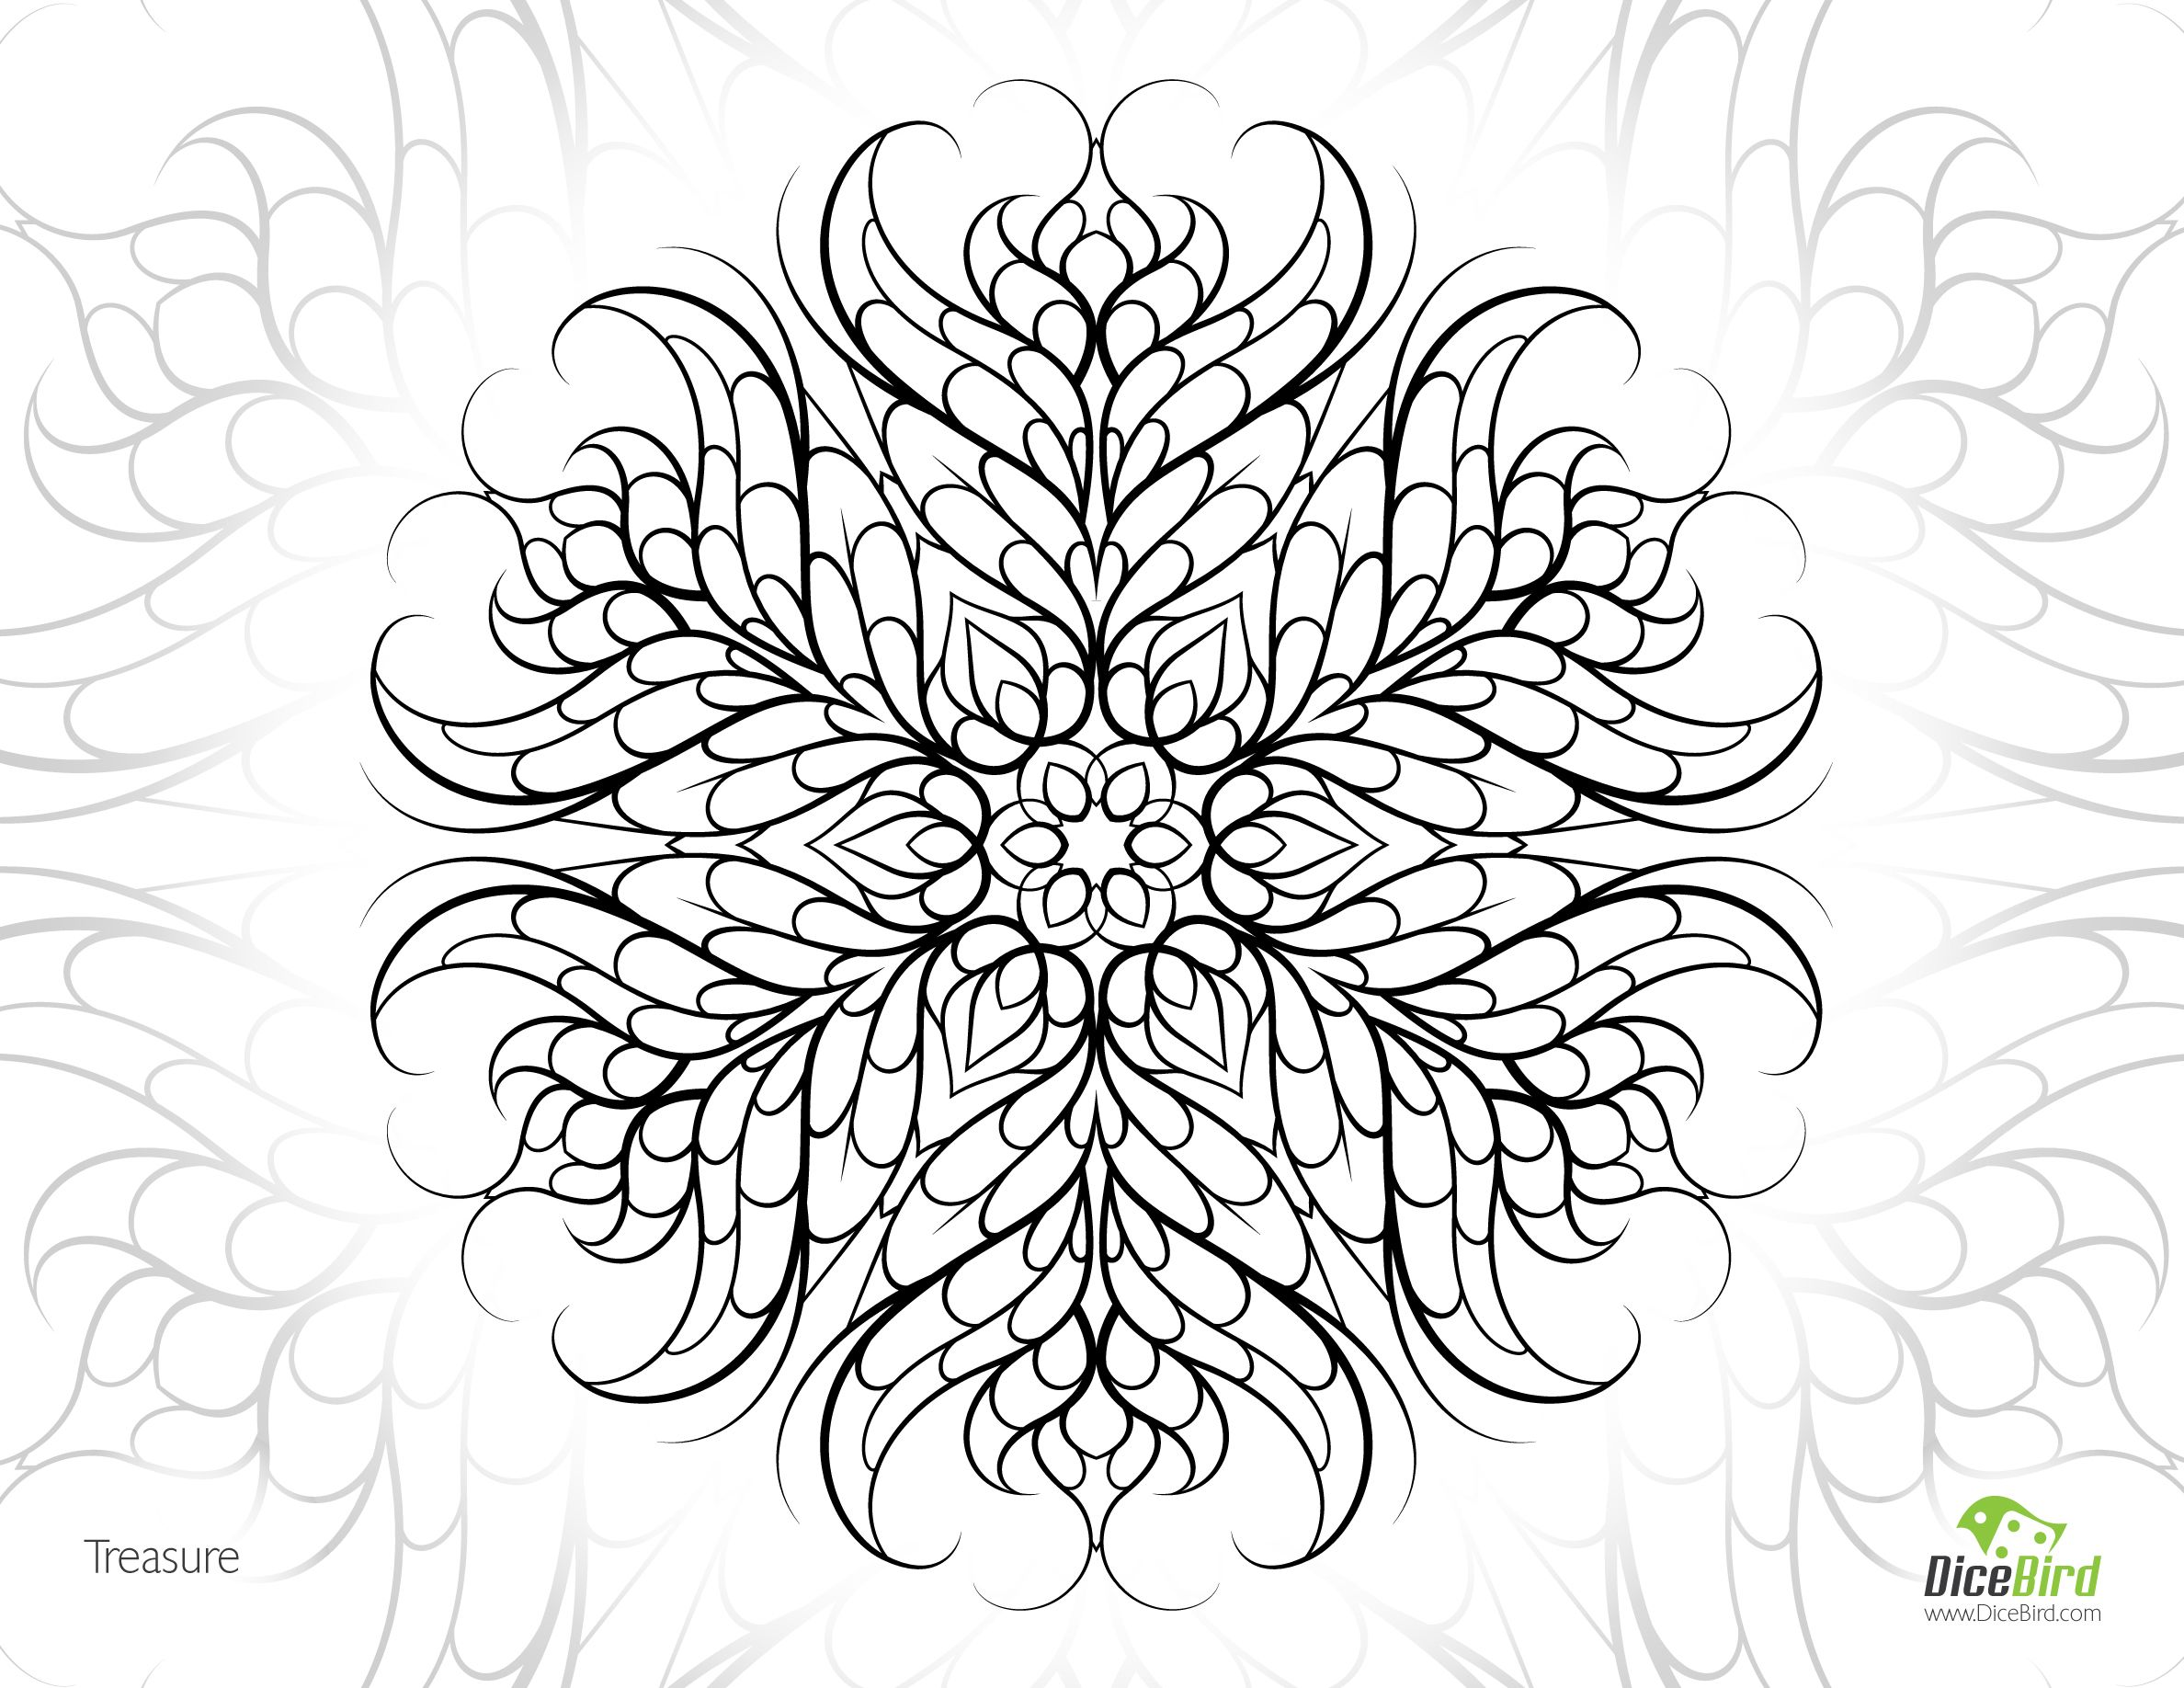 Adult coloring pages free printables mandala - Treasure Free Adult Printable Mandala Adult Colouring Page